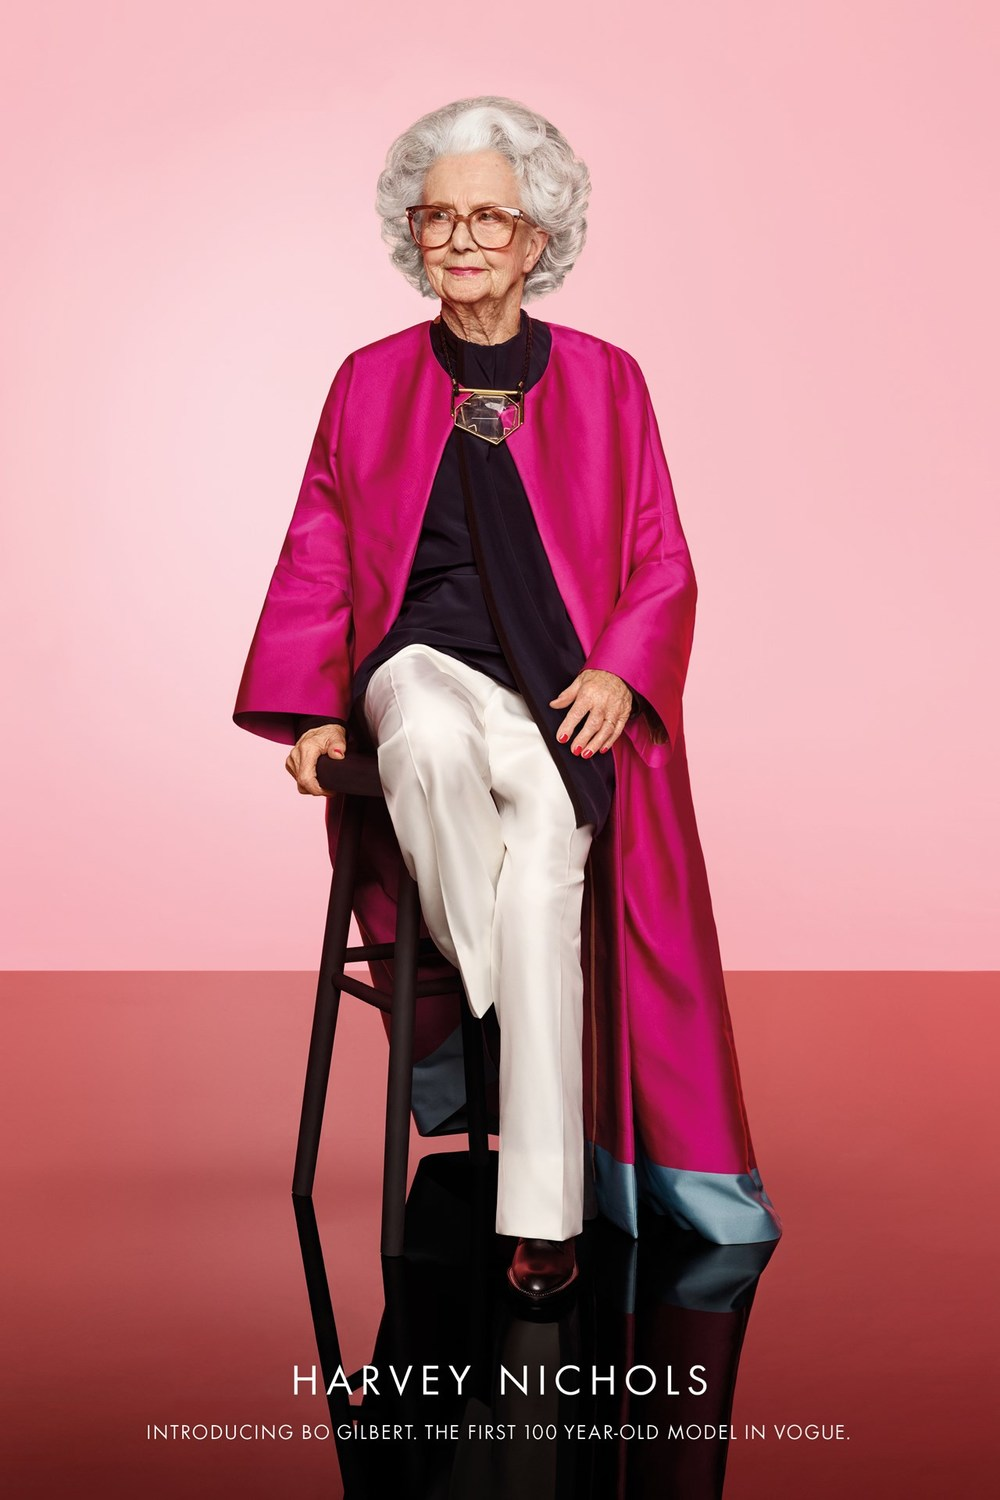 Bo Gilbert, British Vogue's first 100 year old model